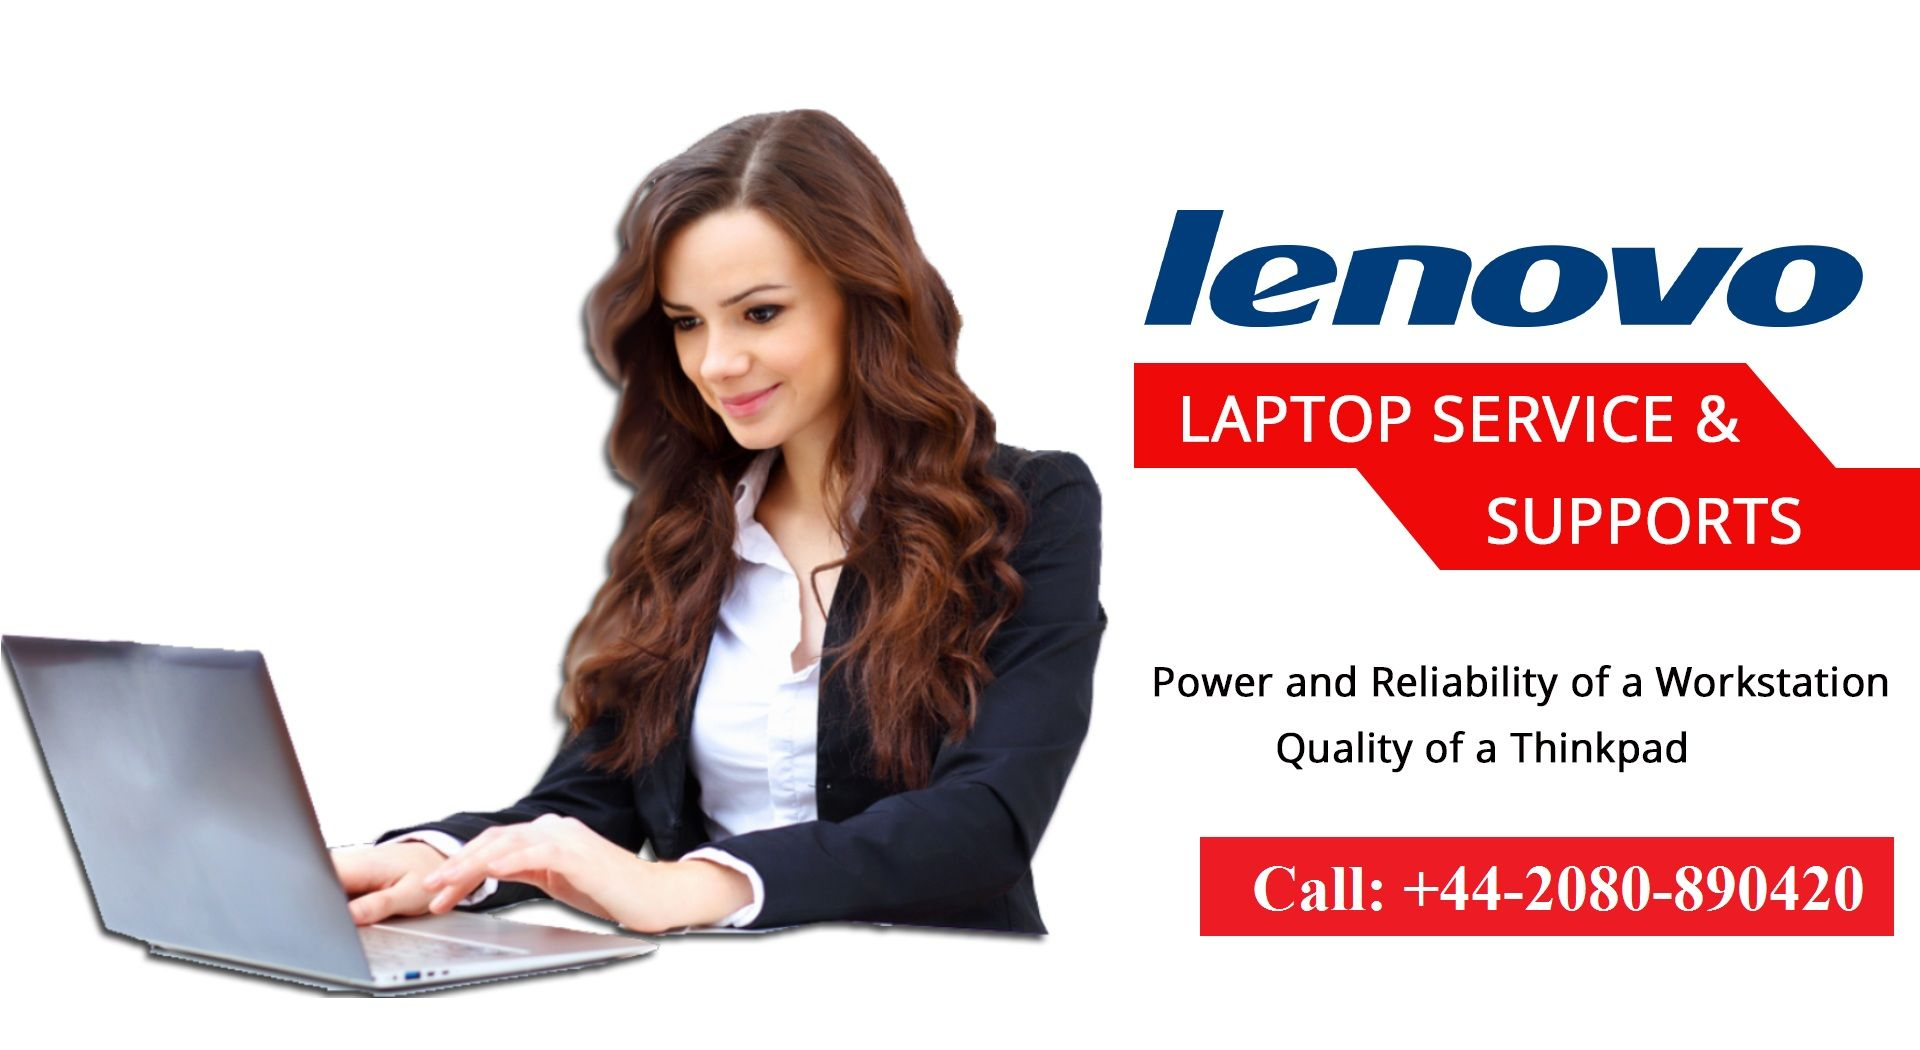 For any query related to Lenovo contact on Lenovo Support